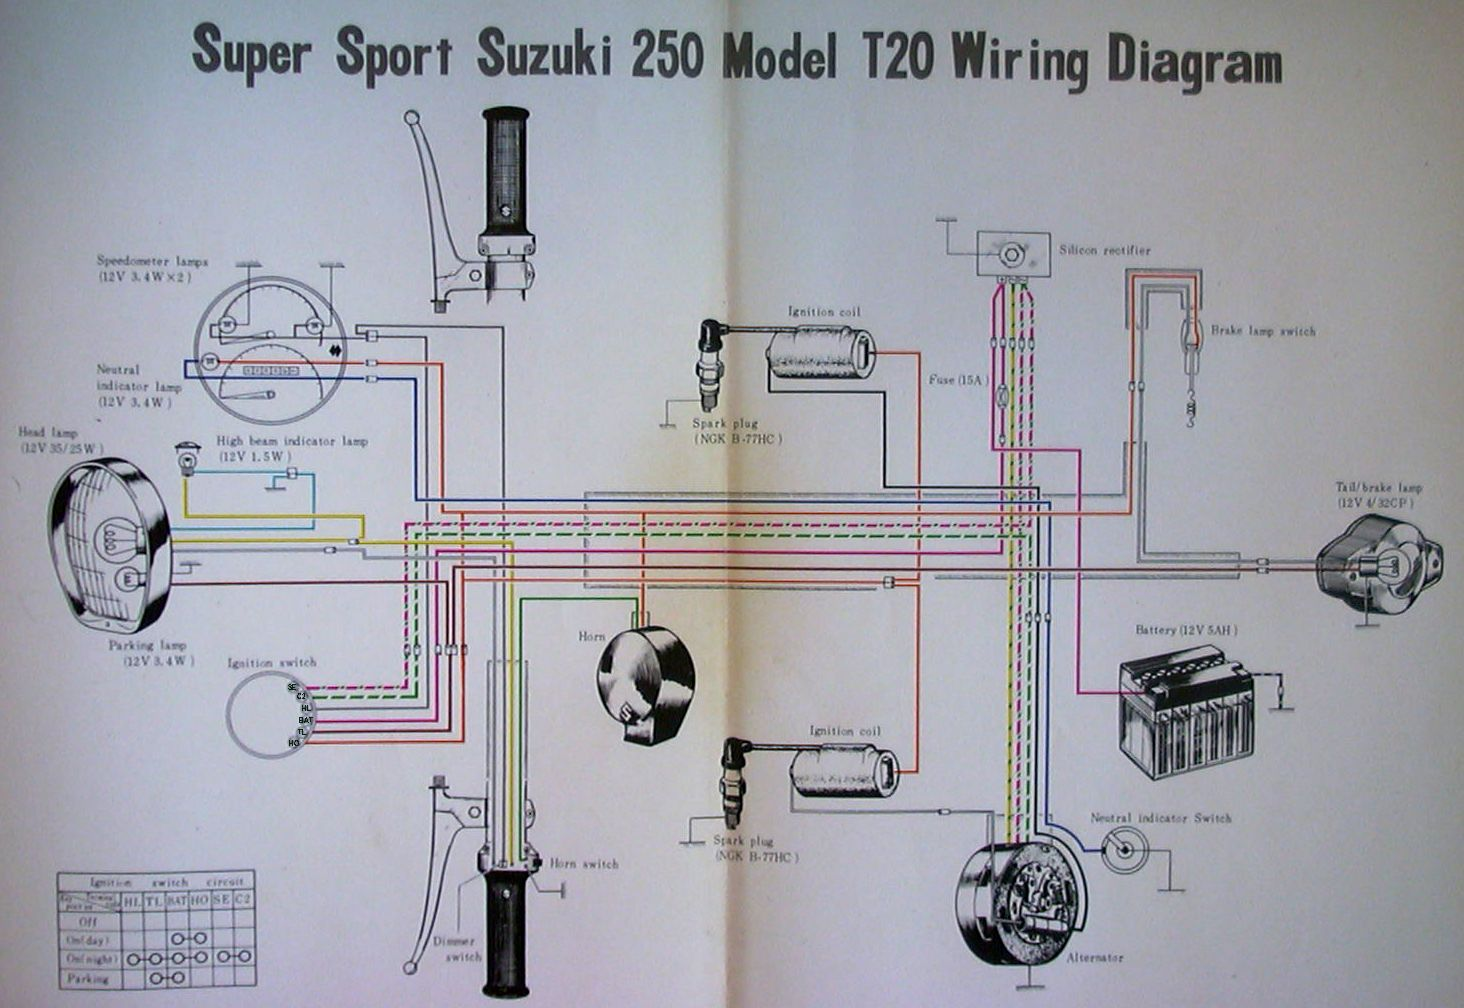 wiring the suzuki t20 'super six' x6 wiring diagram suzuki wiring diagram at reclaimingppi.co